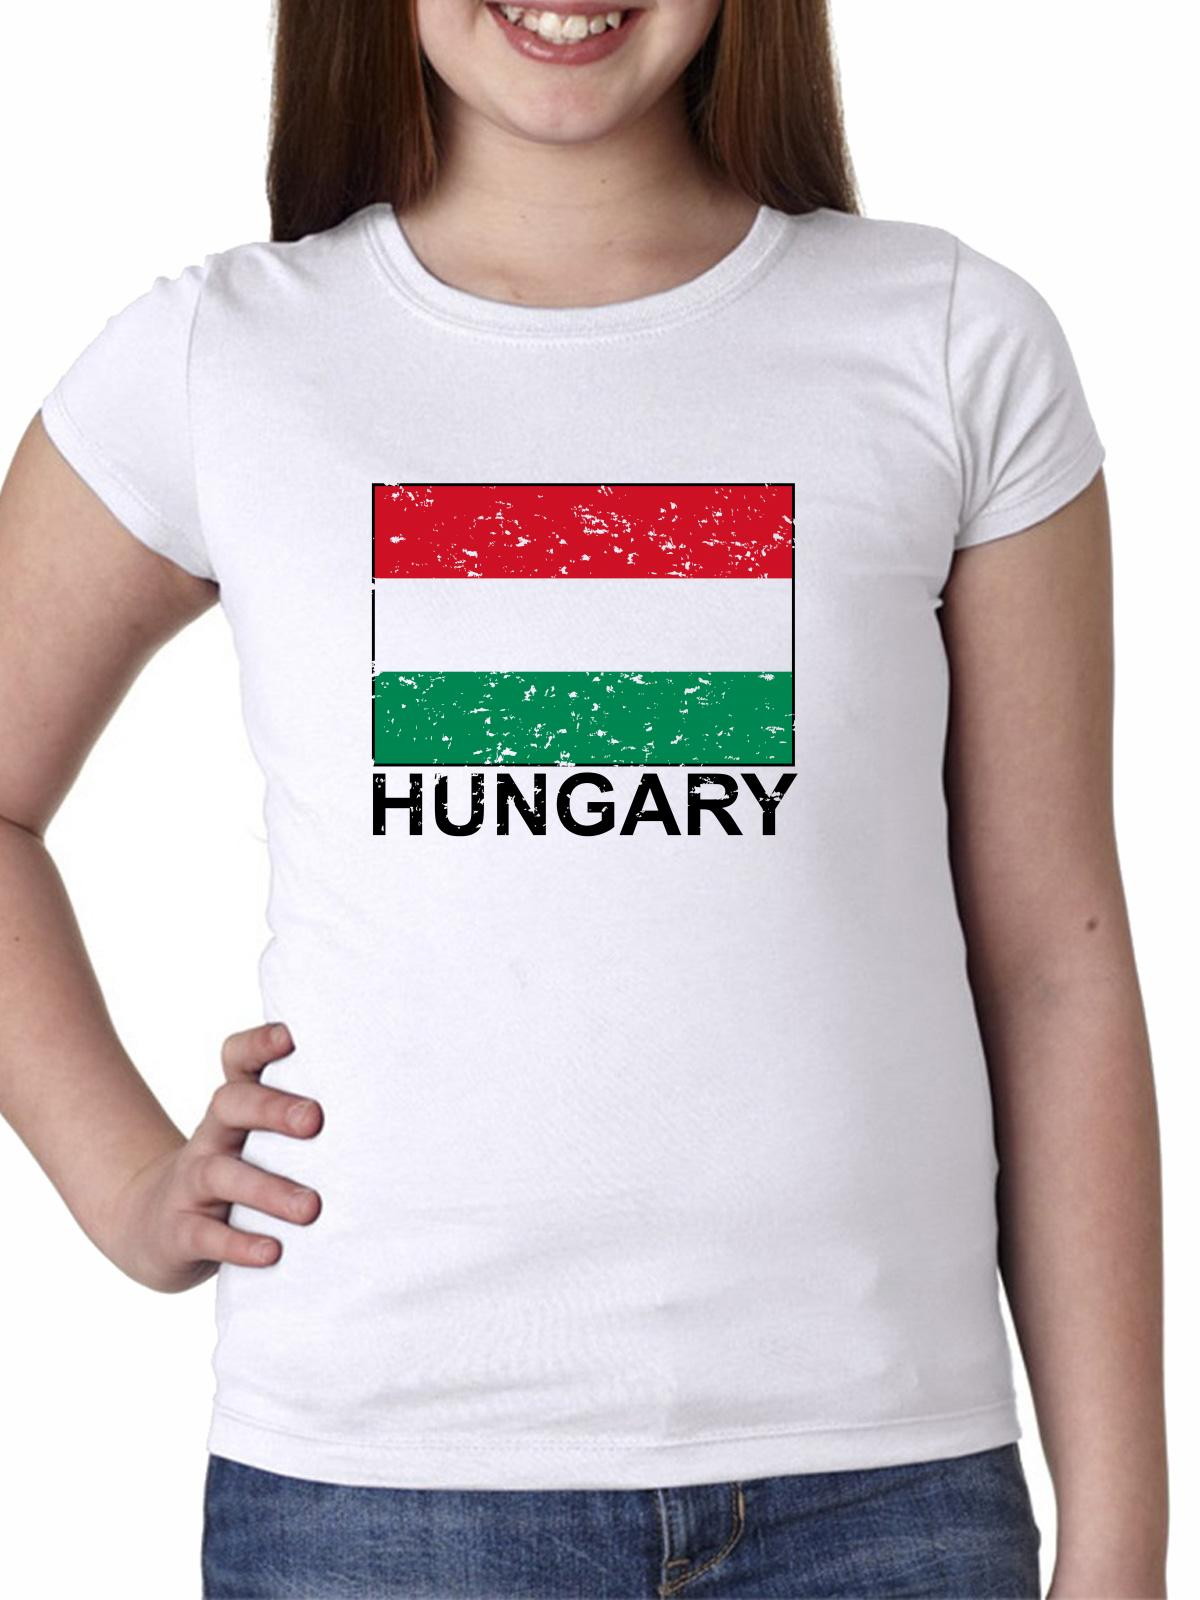 Hungary Flag - Special Vintage Edition Girl's Cotton Youth T-Shirt